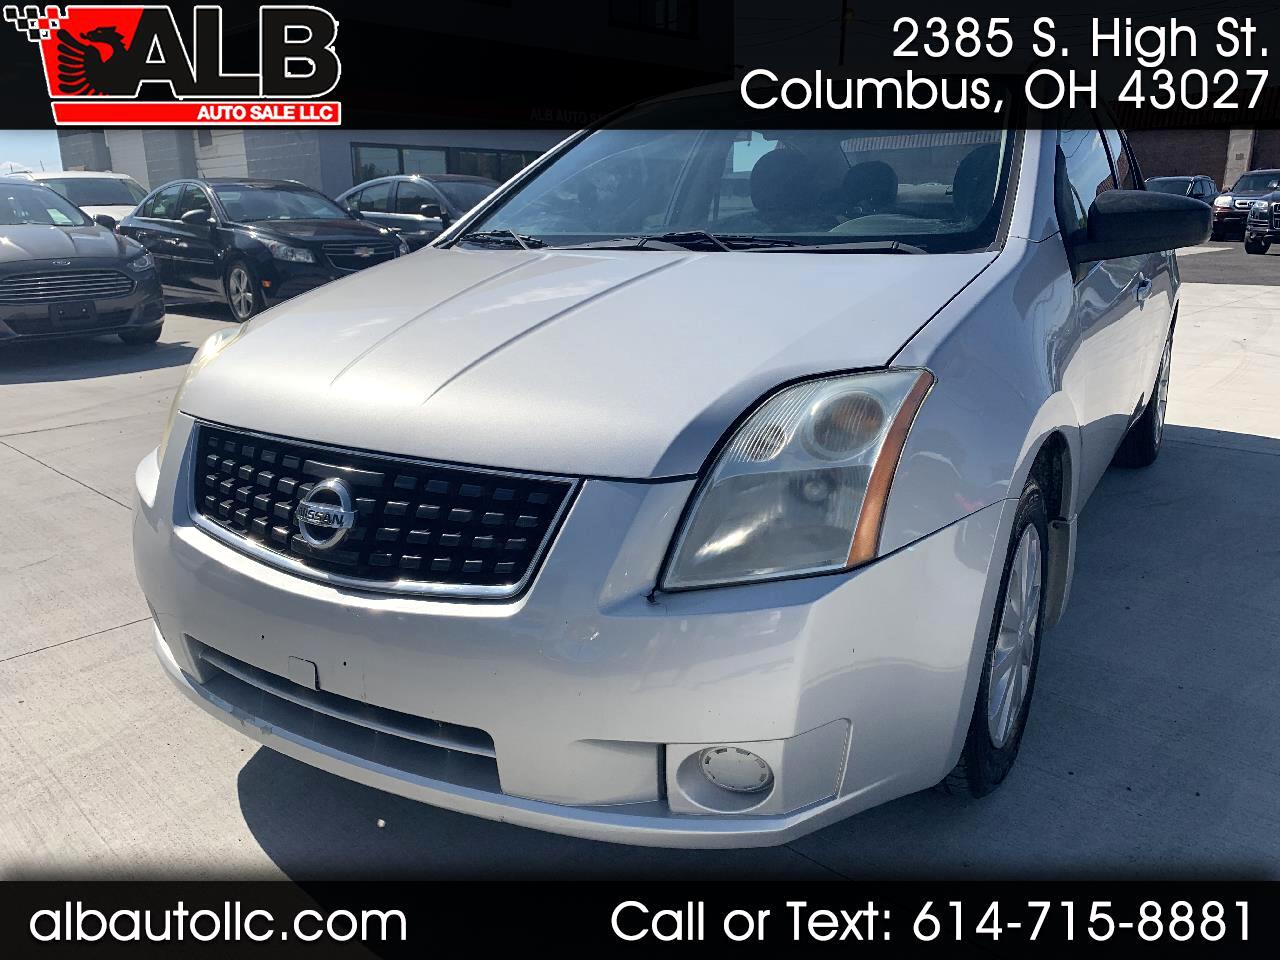 Nissan Columbus Ohio >> Used 2009 Nissan Sentra For Sale In Columbus Oh 43027 Alb